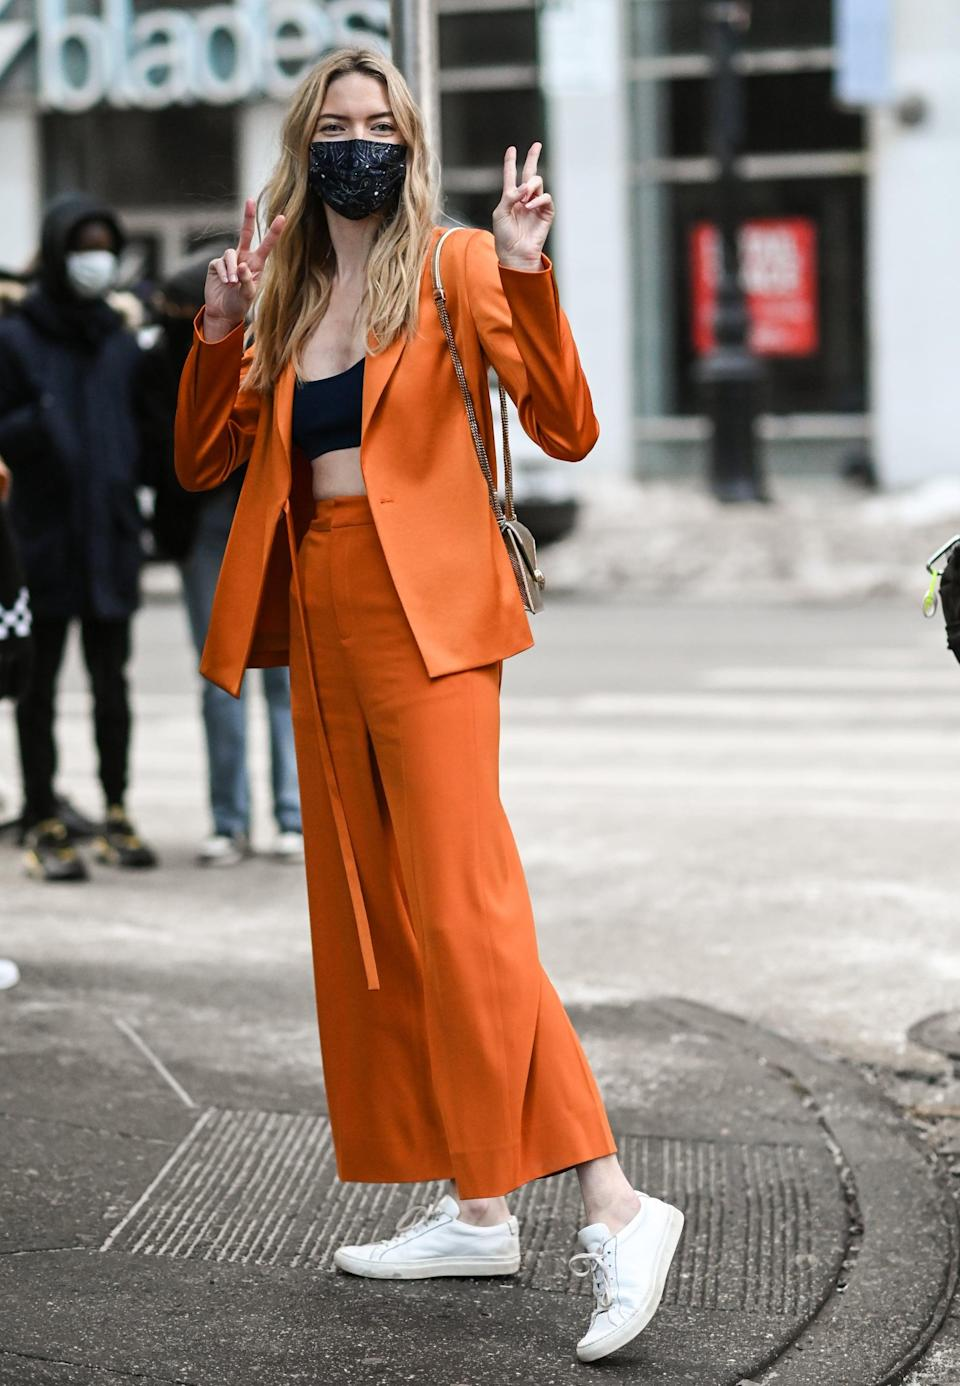 <p>Sometimes, unexpected combos just work. This print orange suit is perfect for spring, and the paisley mask is subtle enough that it doesn't compete.</p>